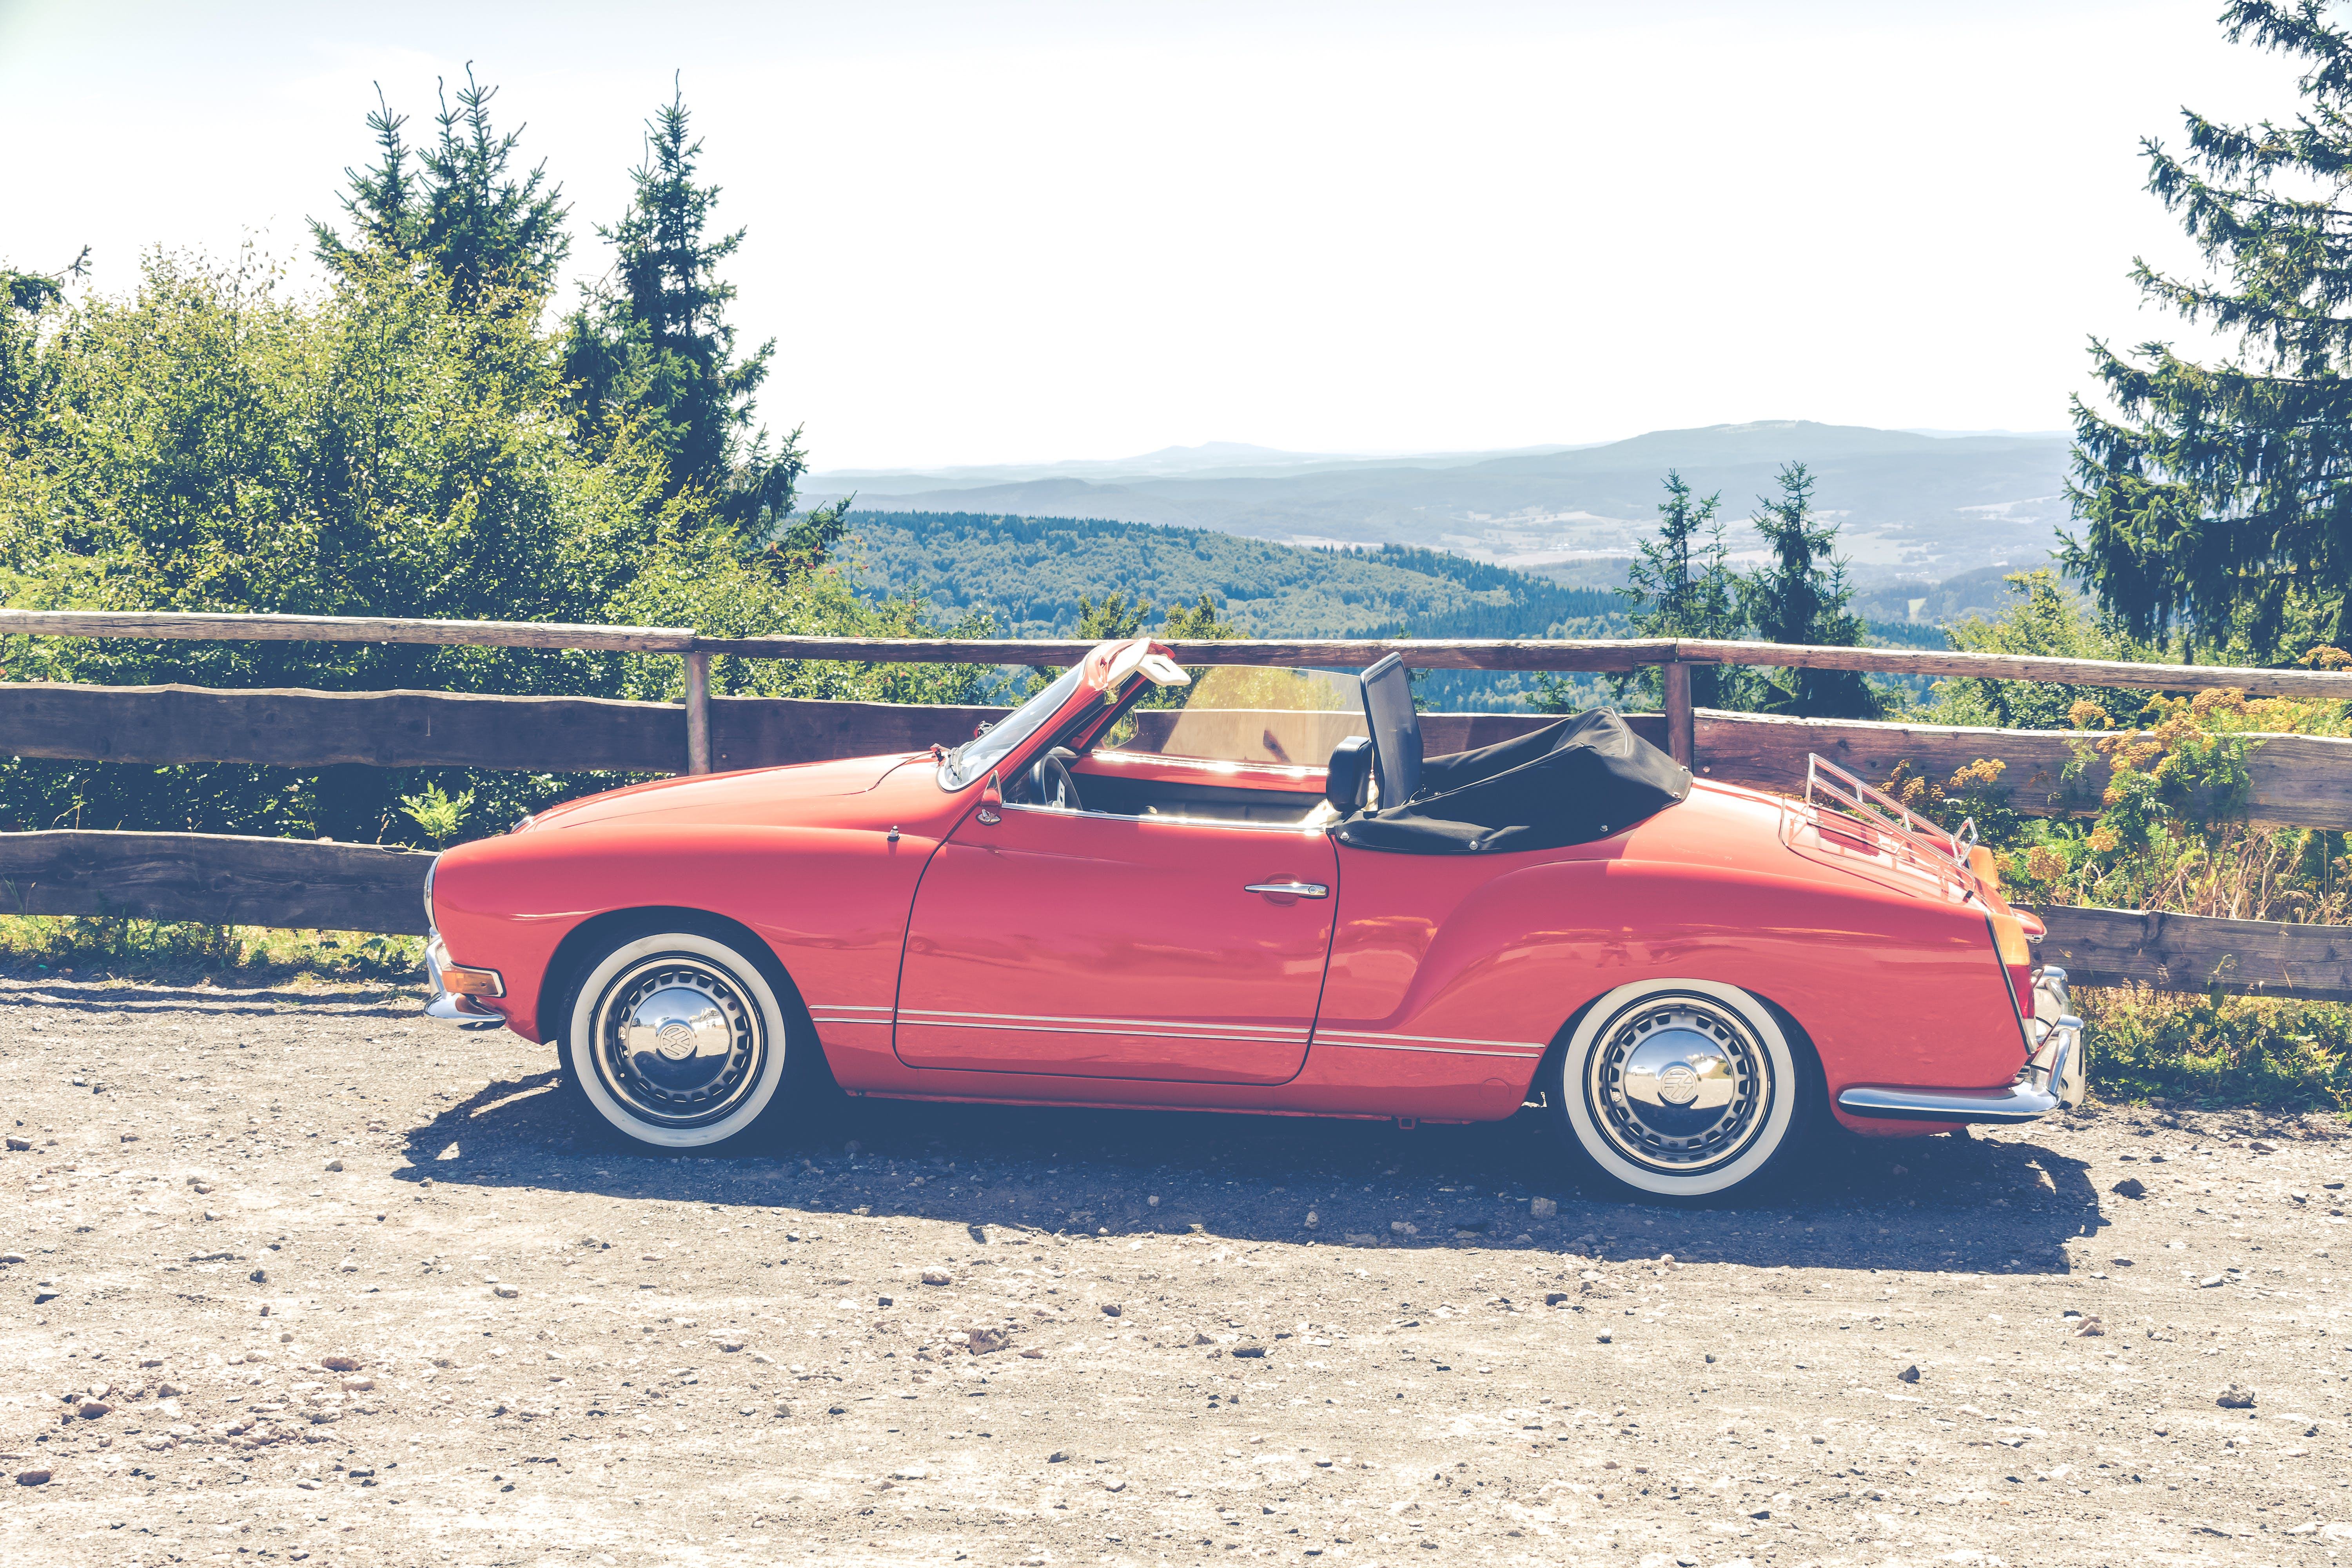 Red Convertible Coupe Parked Near Wooden Fence Overlooking Trees